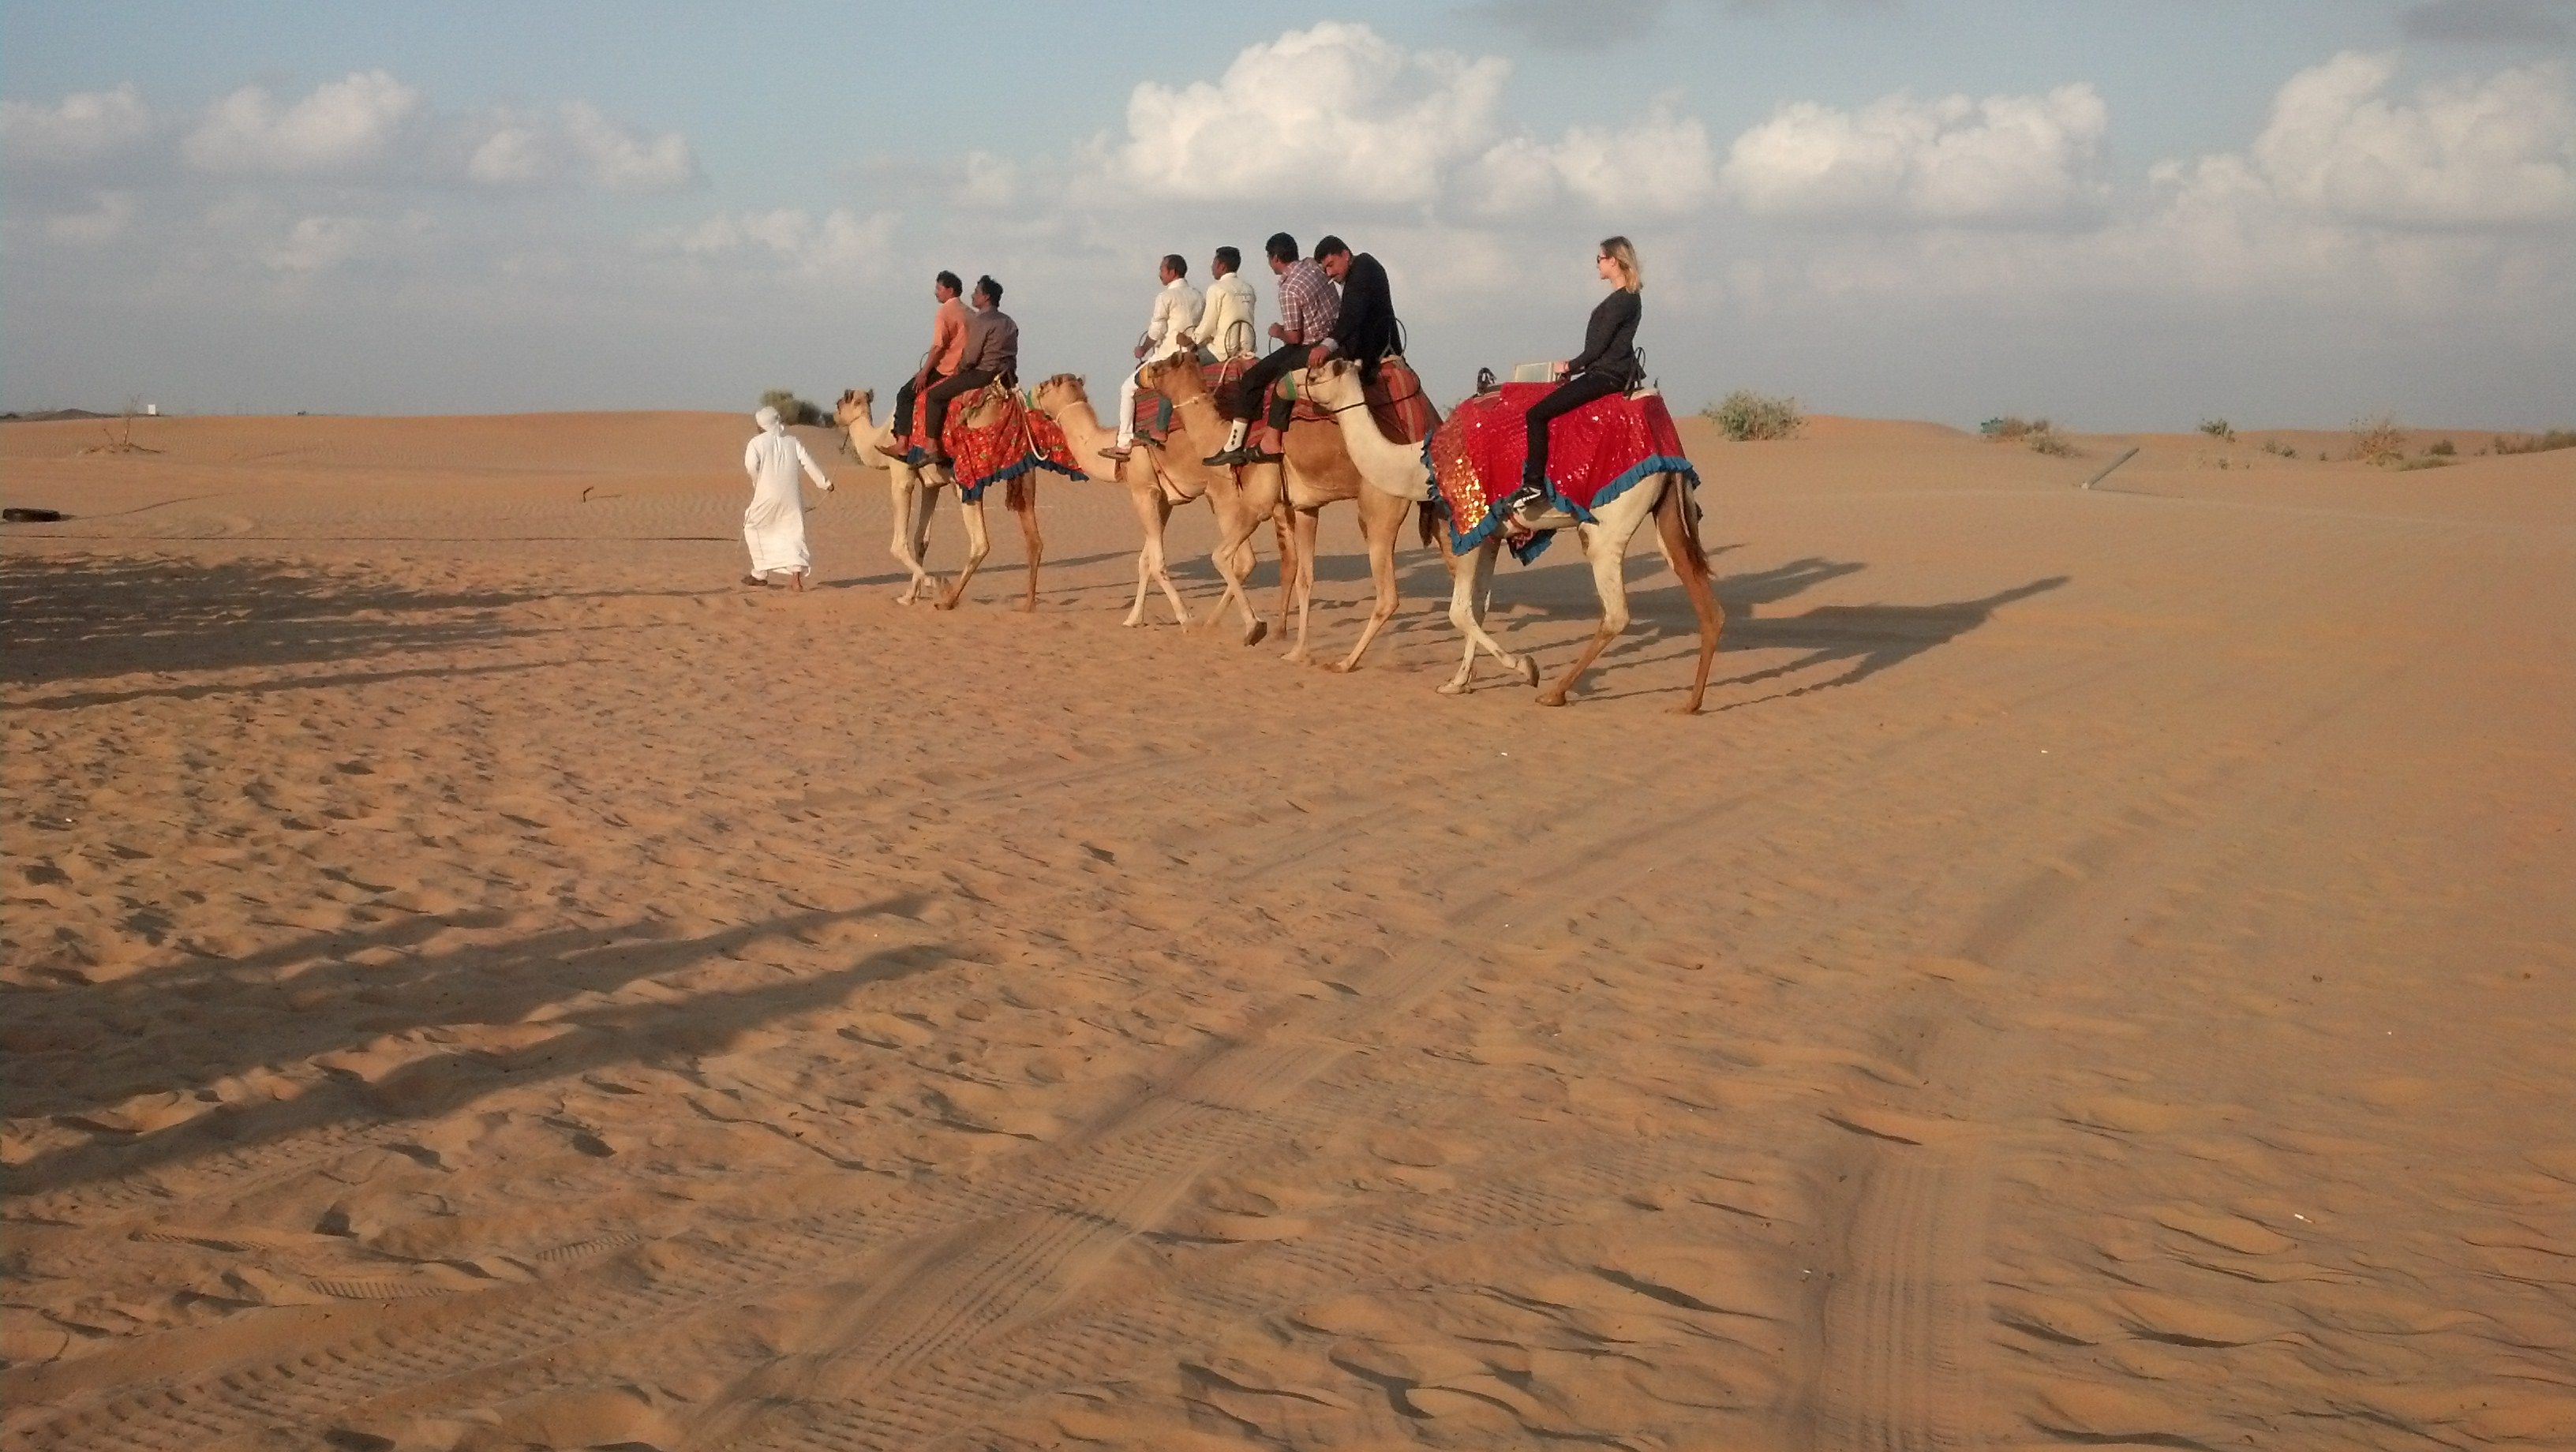 Camel safari dubai camel ride dubai desert safari camel safari camel safari dubai camel ride dubai desert safari camel safari dubai in dubai desert walking camel safari is undoubtedly one of the most exciting ways thecheapjerseys Image collections